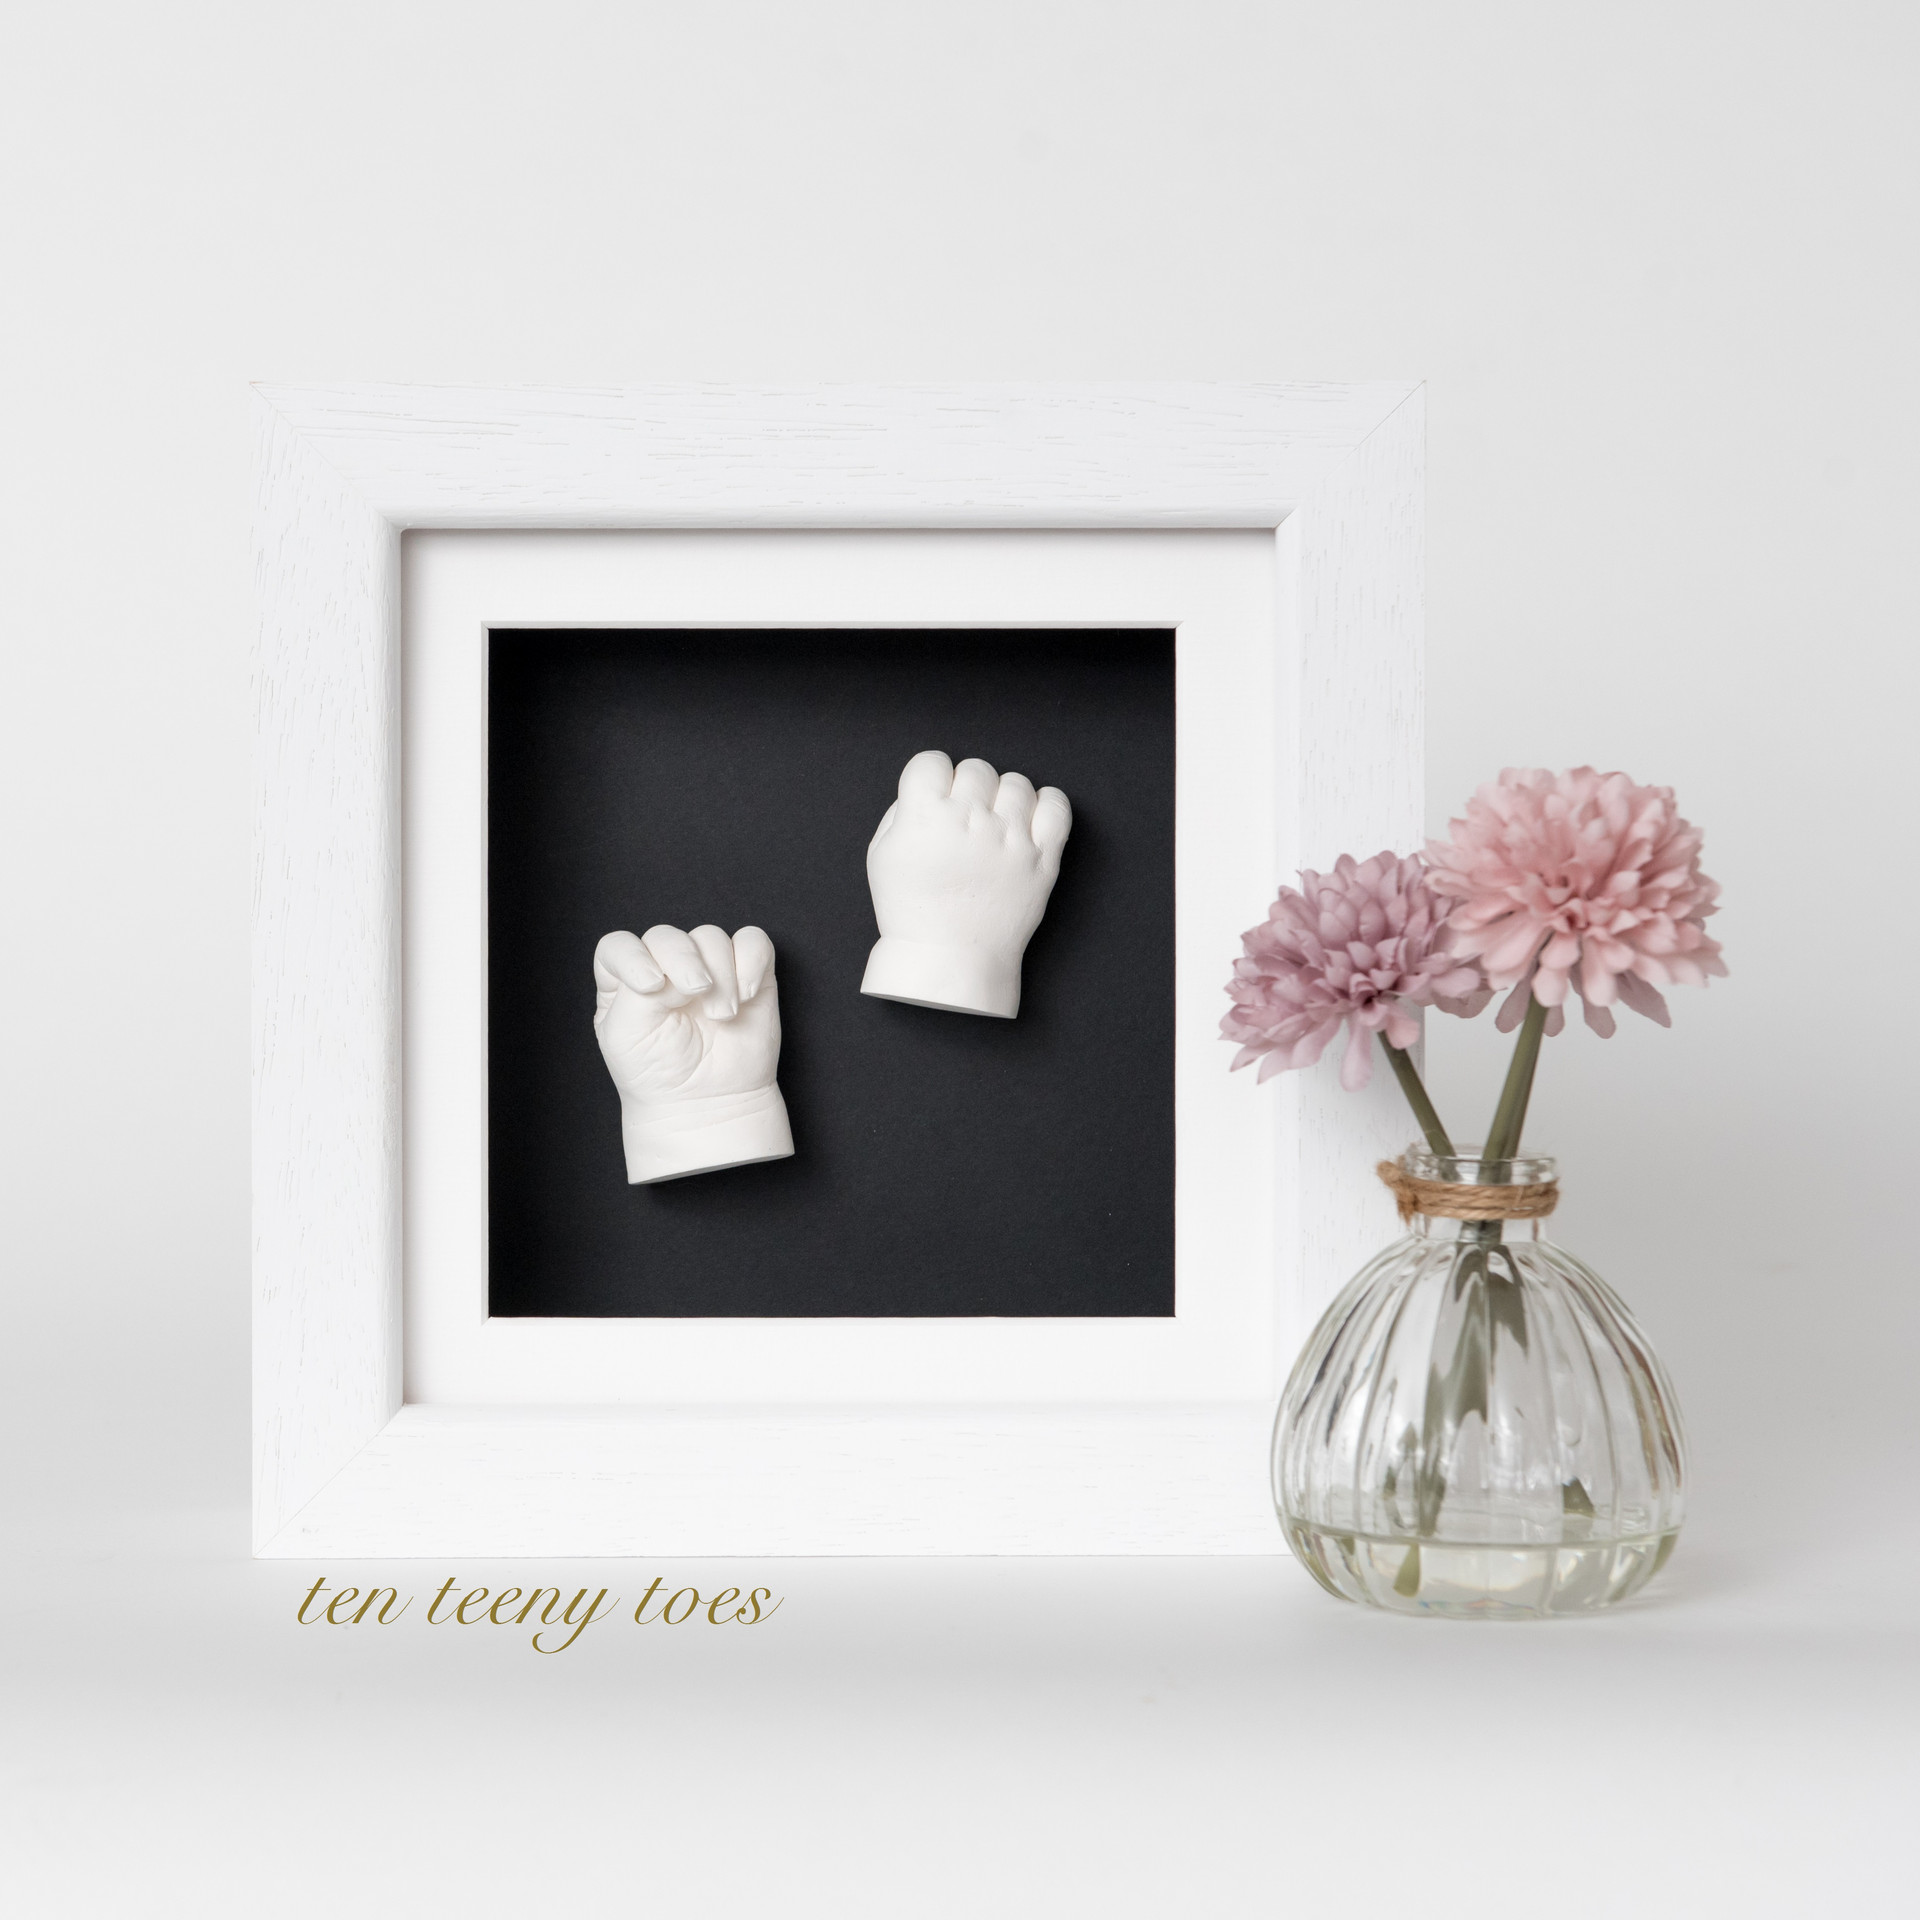 Two white hand casts in a white contemporary hardwood frame.